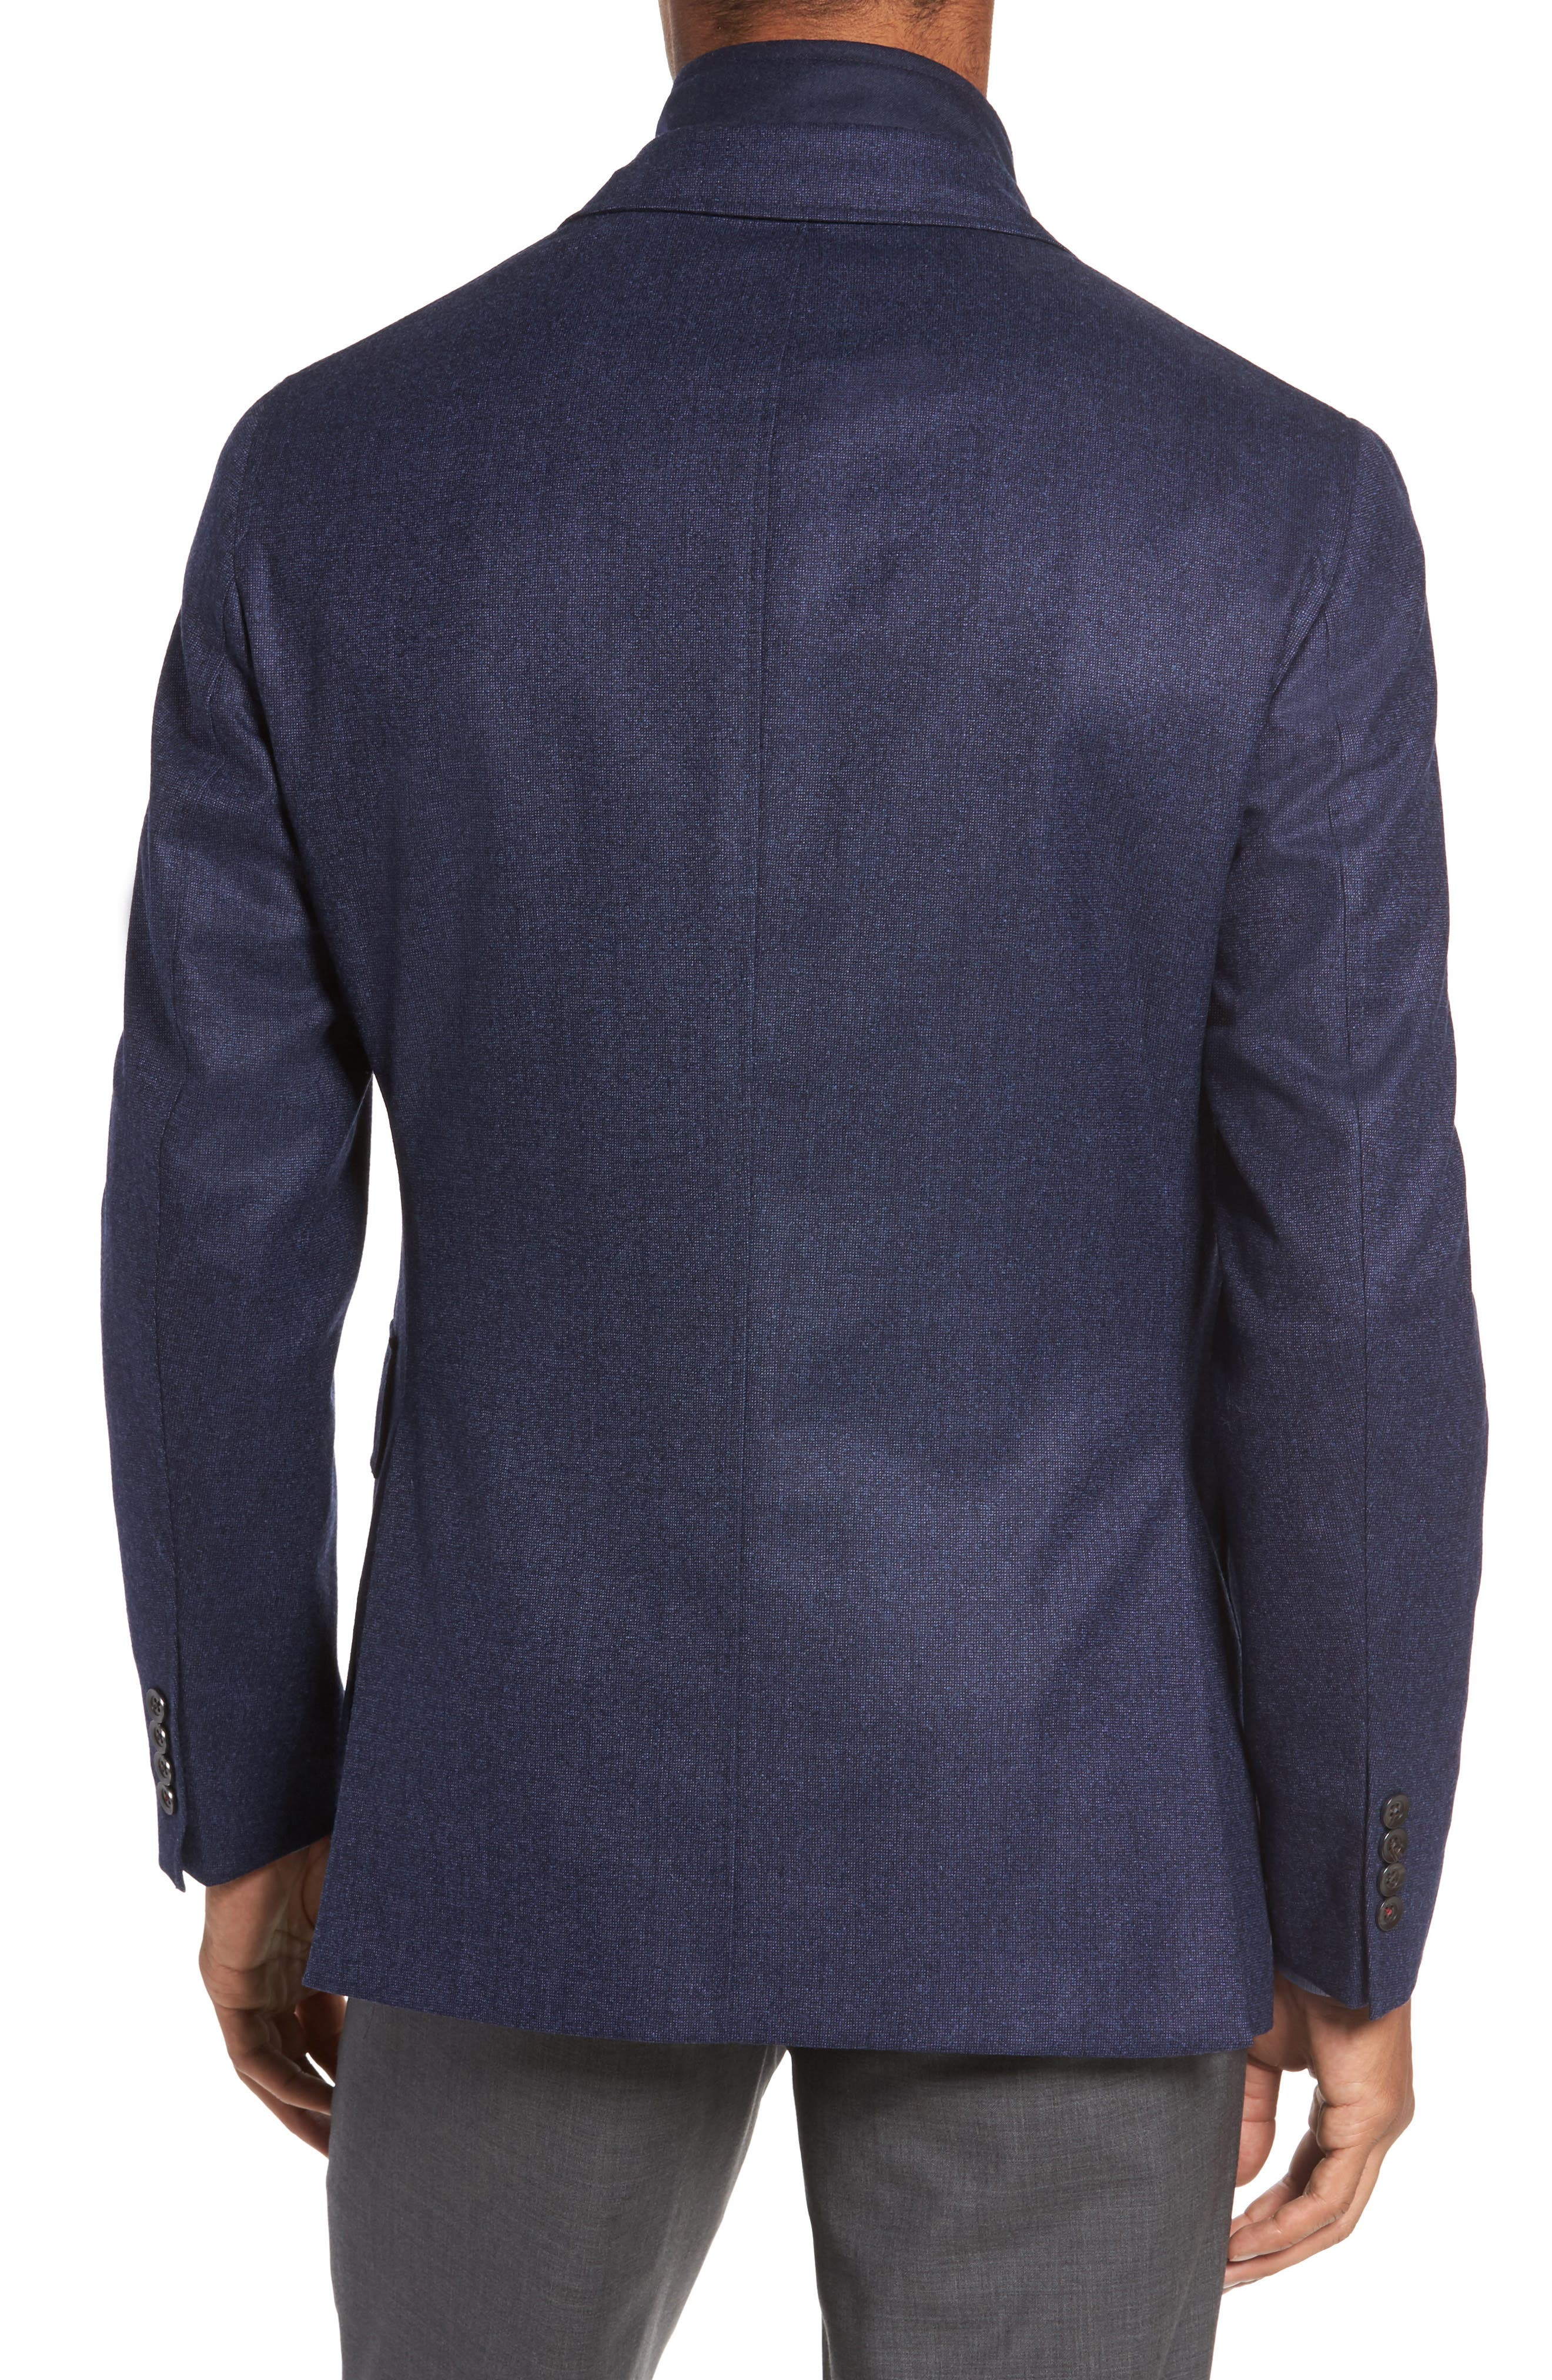 Aaron Classic Fit Wool Blazer,                             Alternate thumbnail 2, color,                             Navy